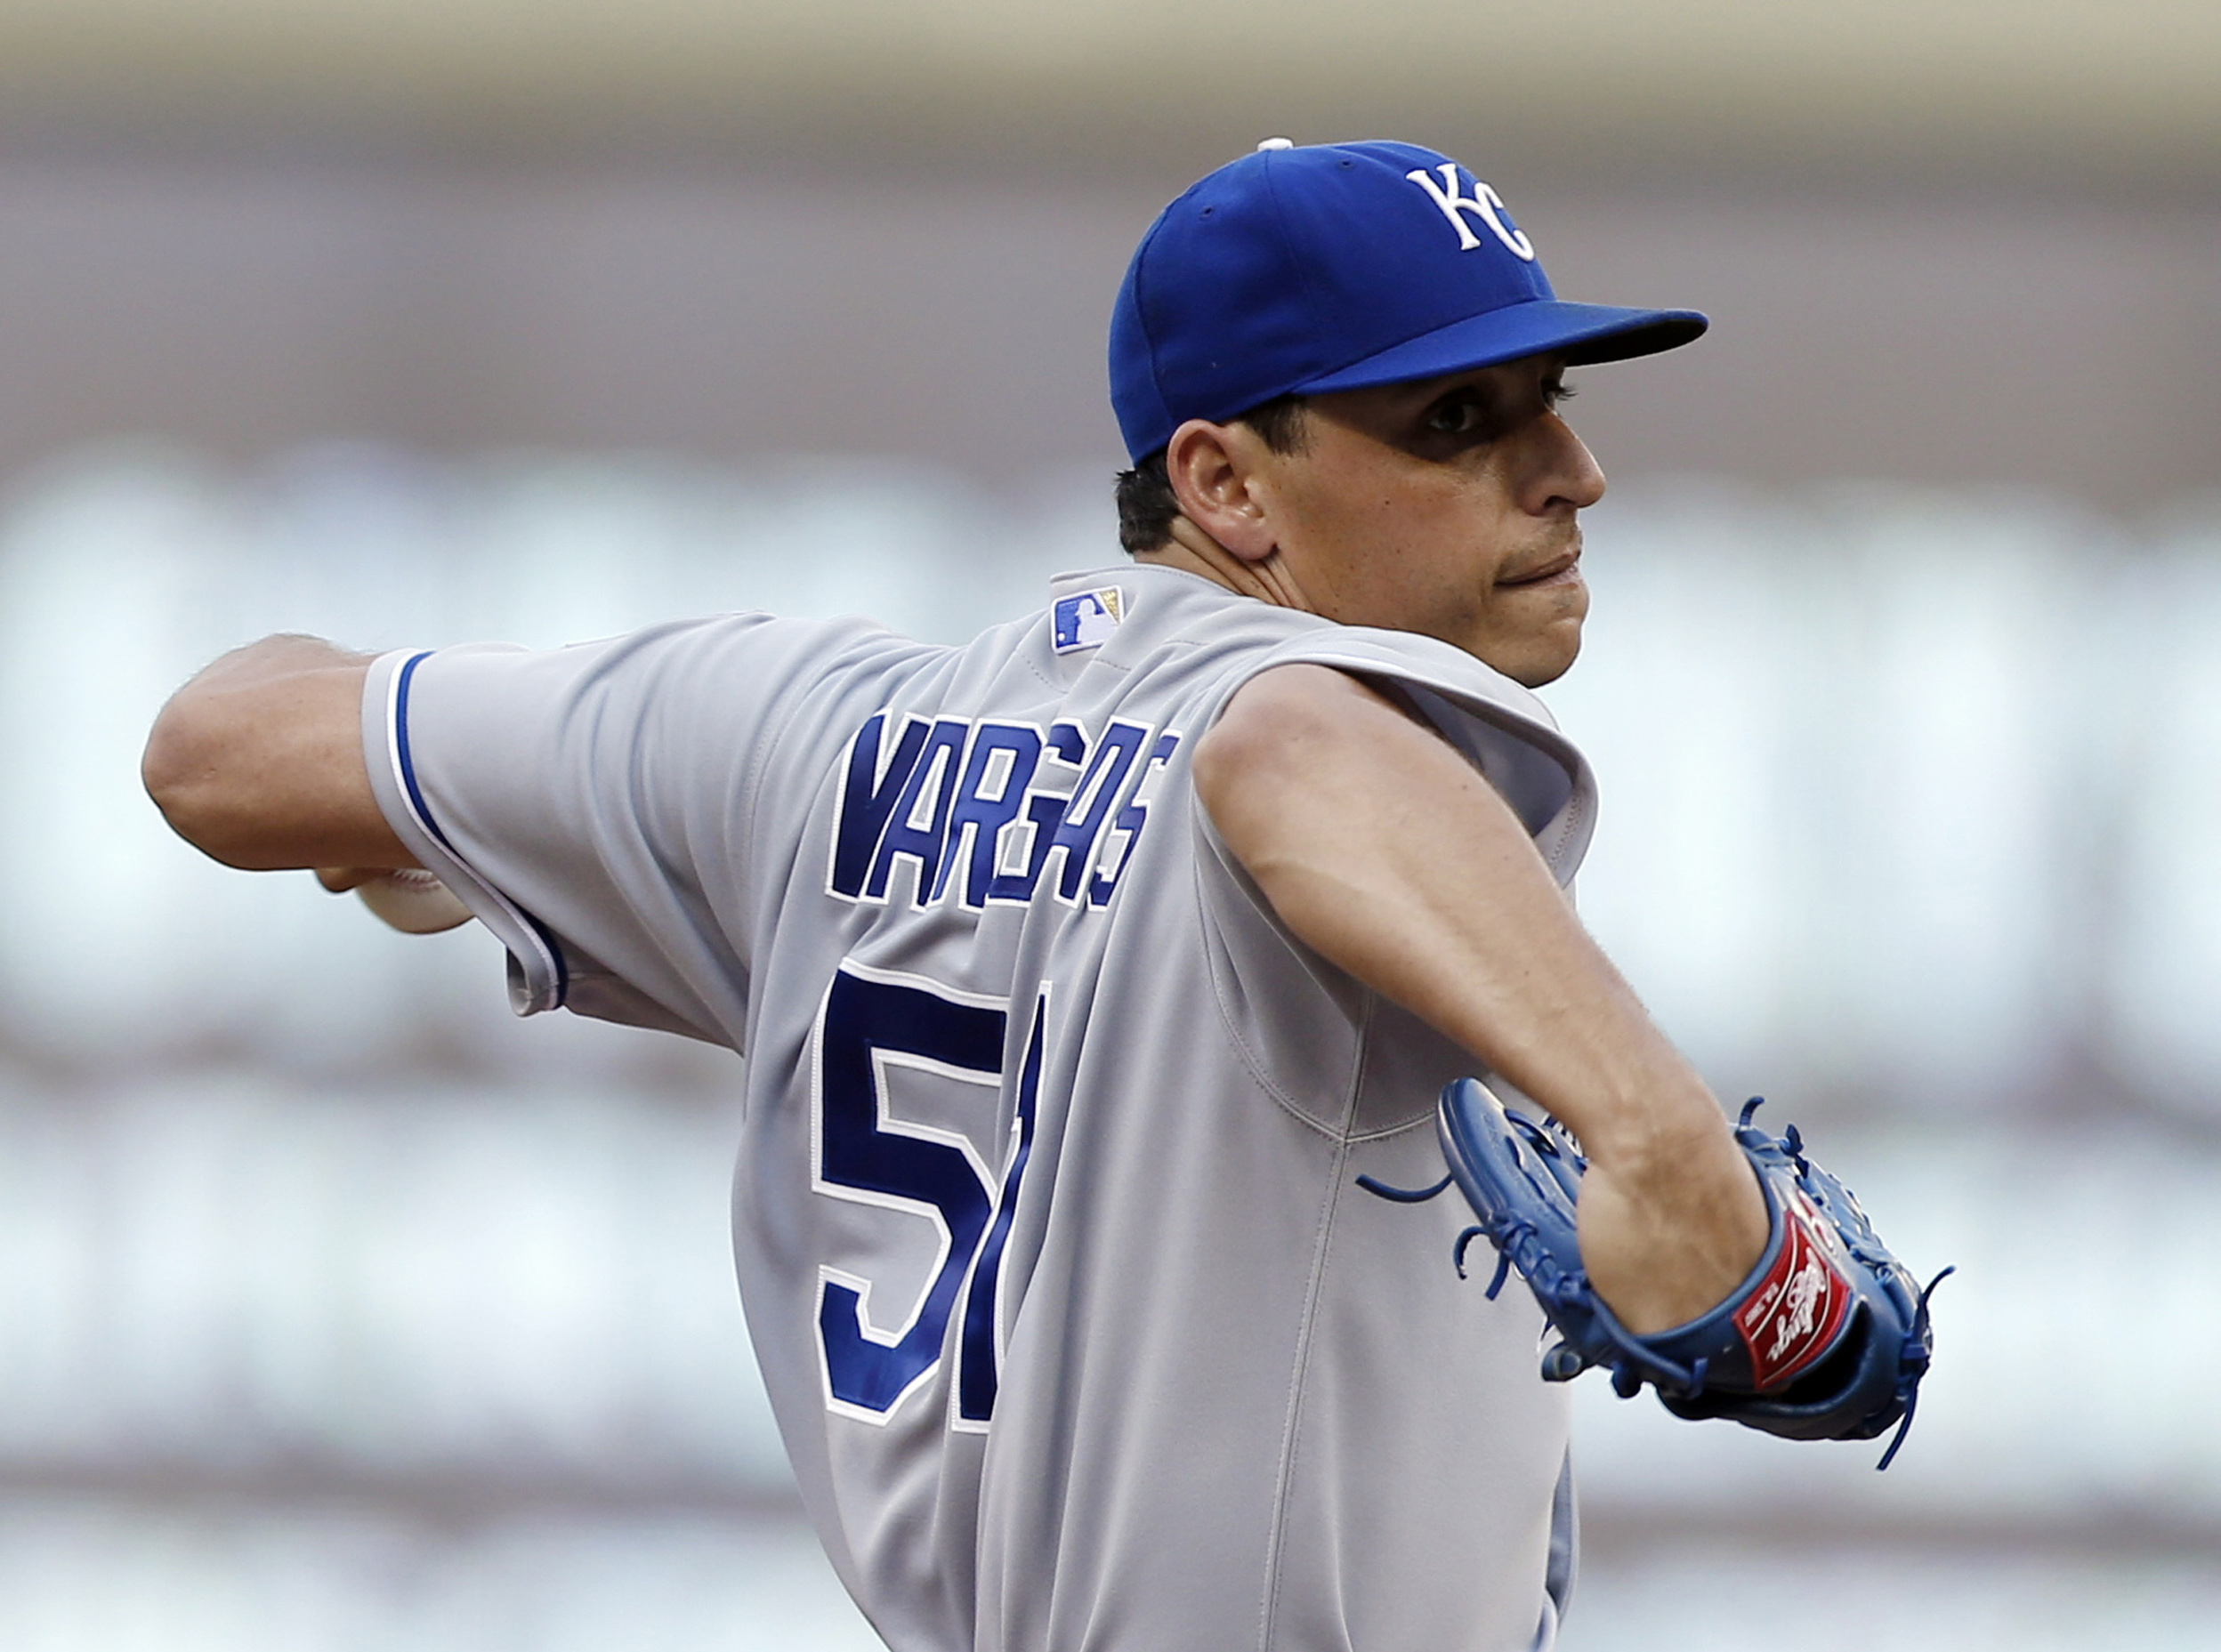 Kansas City Royals pitcher Jason Vargas throws against the Minnesota Twins in the first inning of a baseball game Monday, June 8, 2015, in Minneapolis. (AP Photo/Jim Mone)